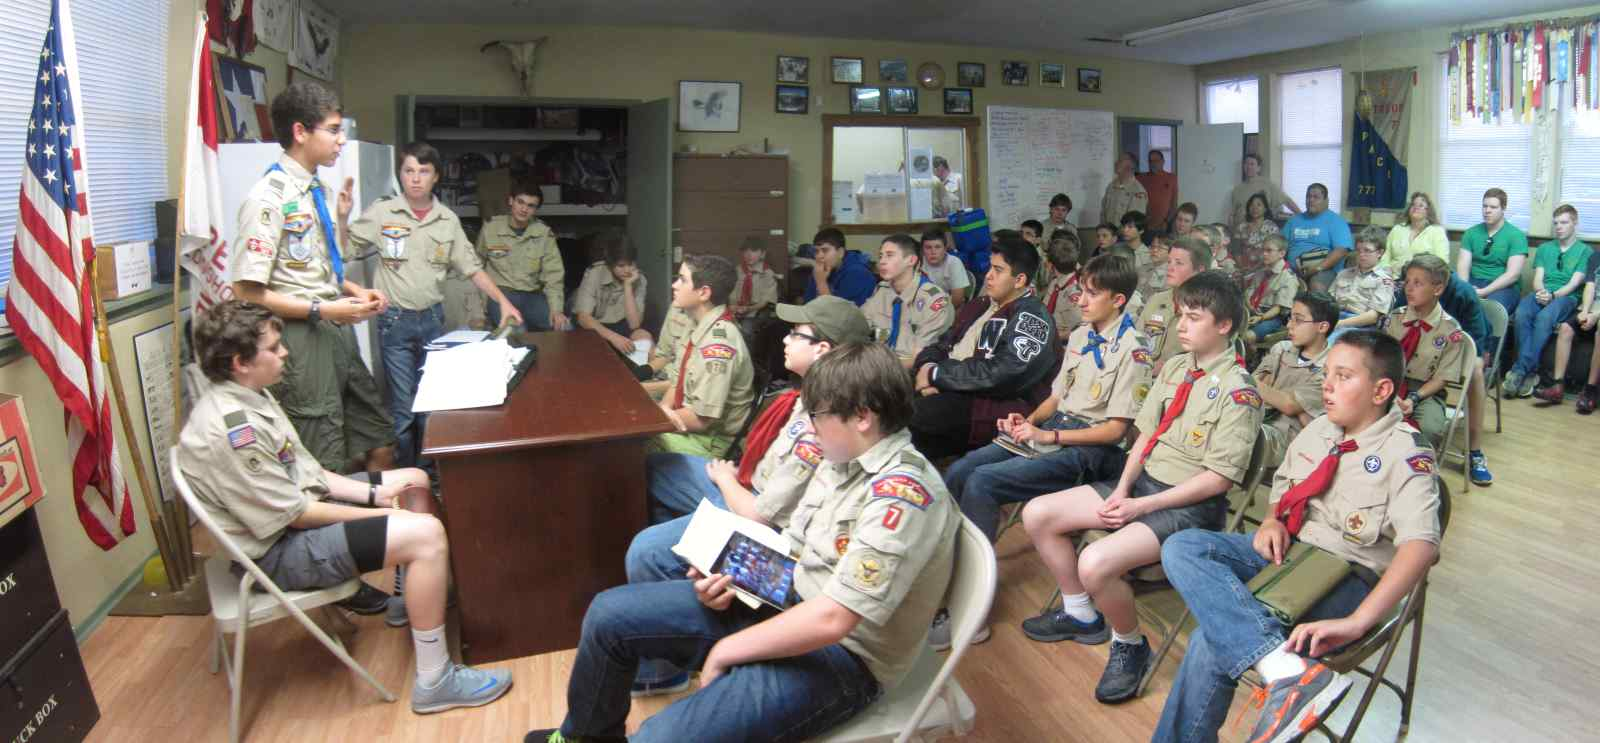 a review of a short story about boy scout troop While boy scouts and girl scouts share similar origin stories (both have roots  with  badges, while boy scouts must meet with a scout master to review their  progress, and  every troop in america is different, and activities for both groups  are largely  where to find shorts for girls that aren't short shorts.